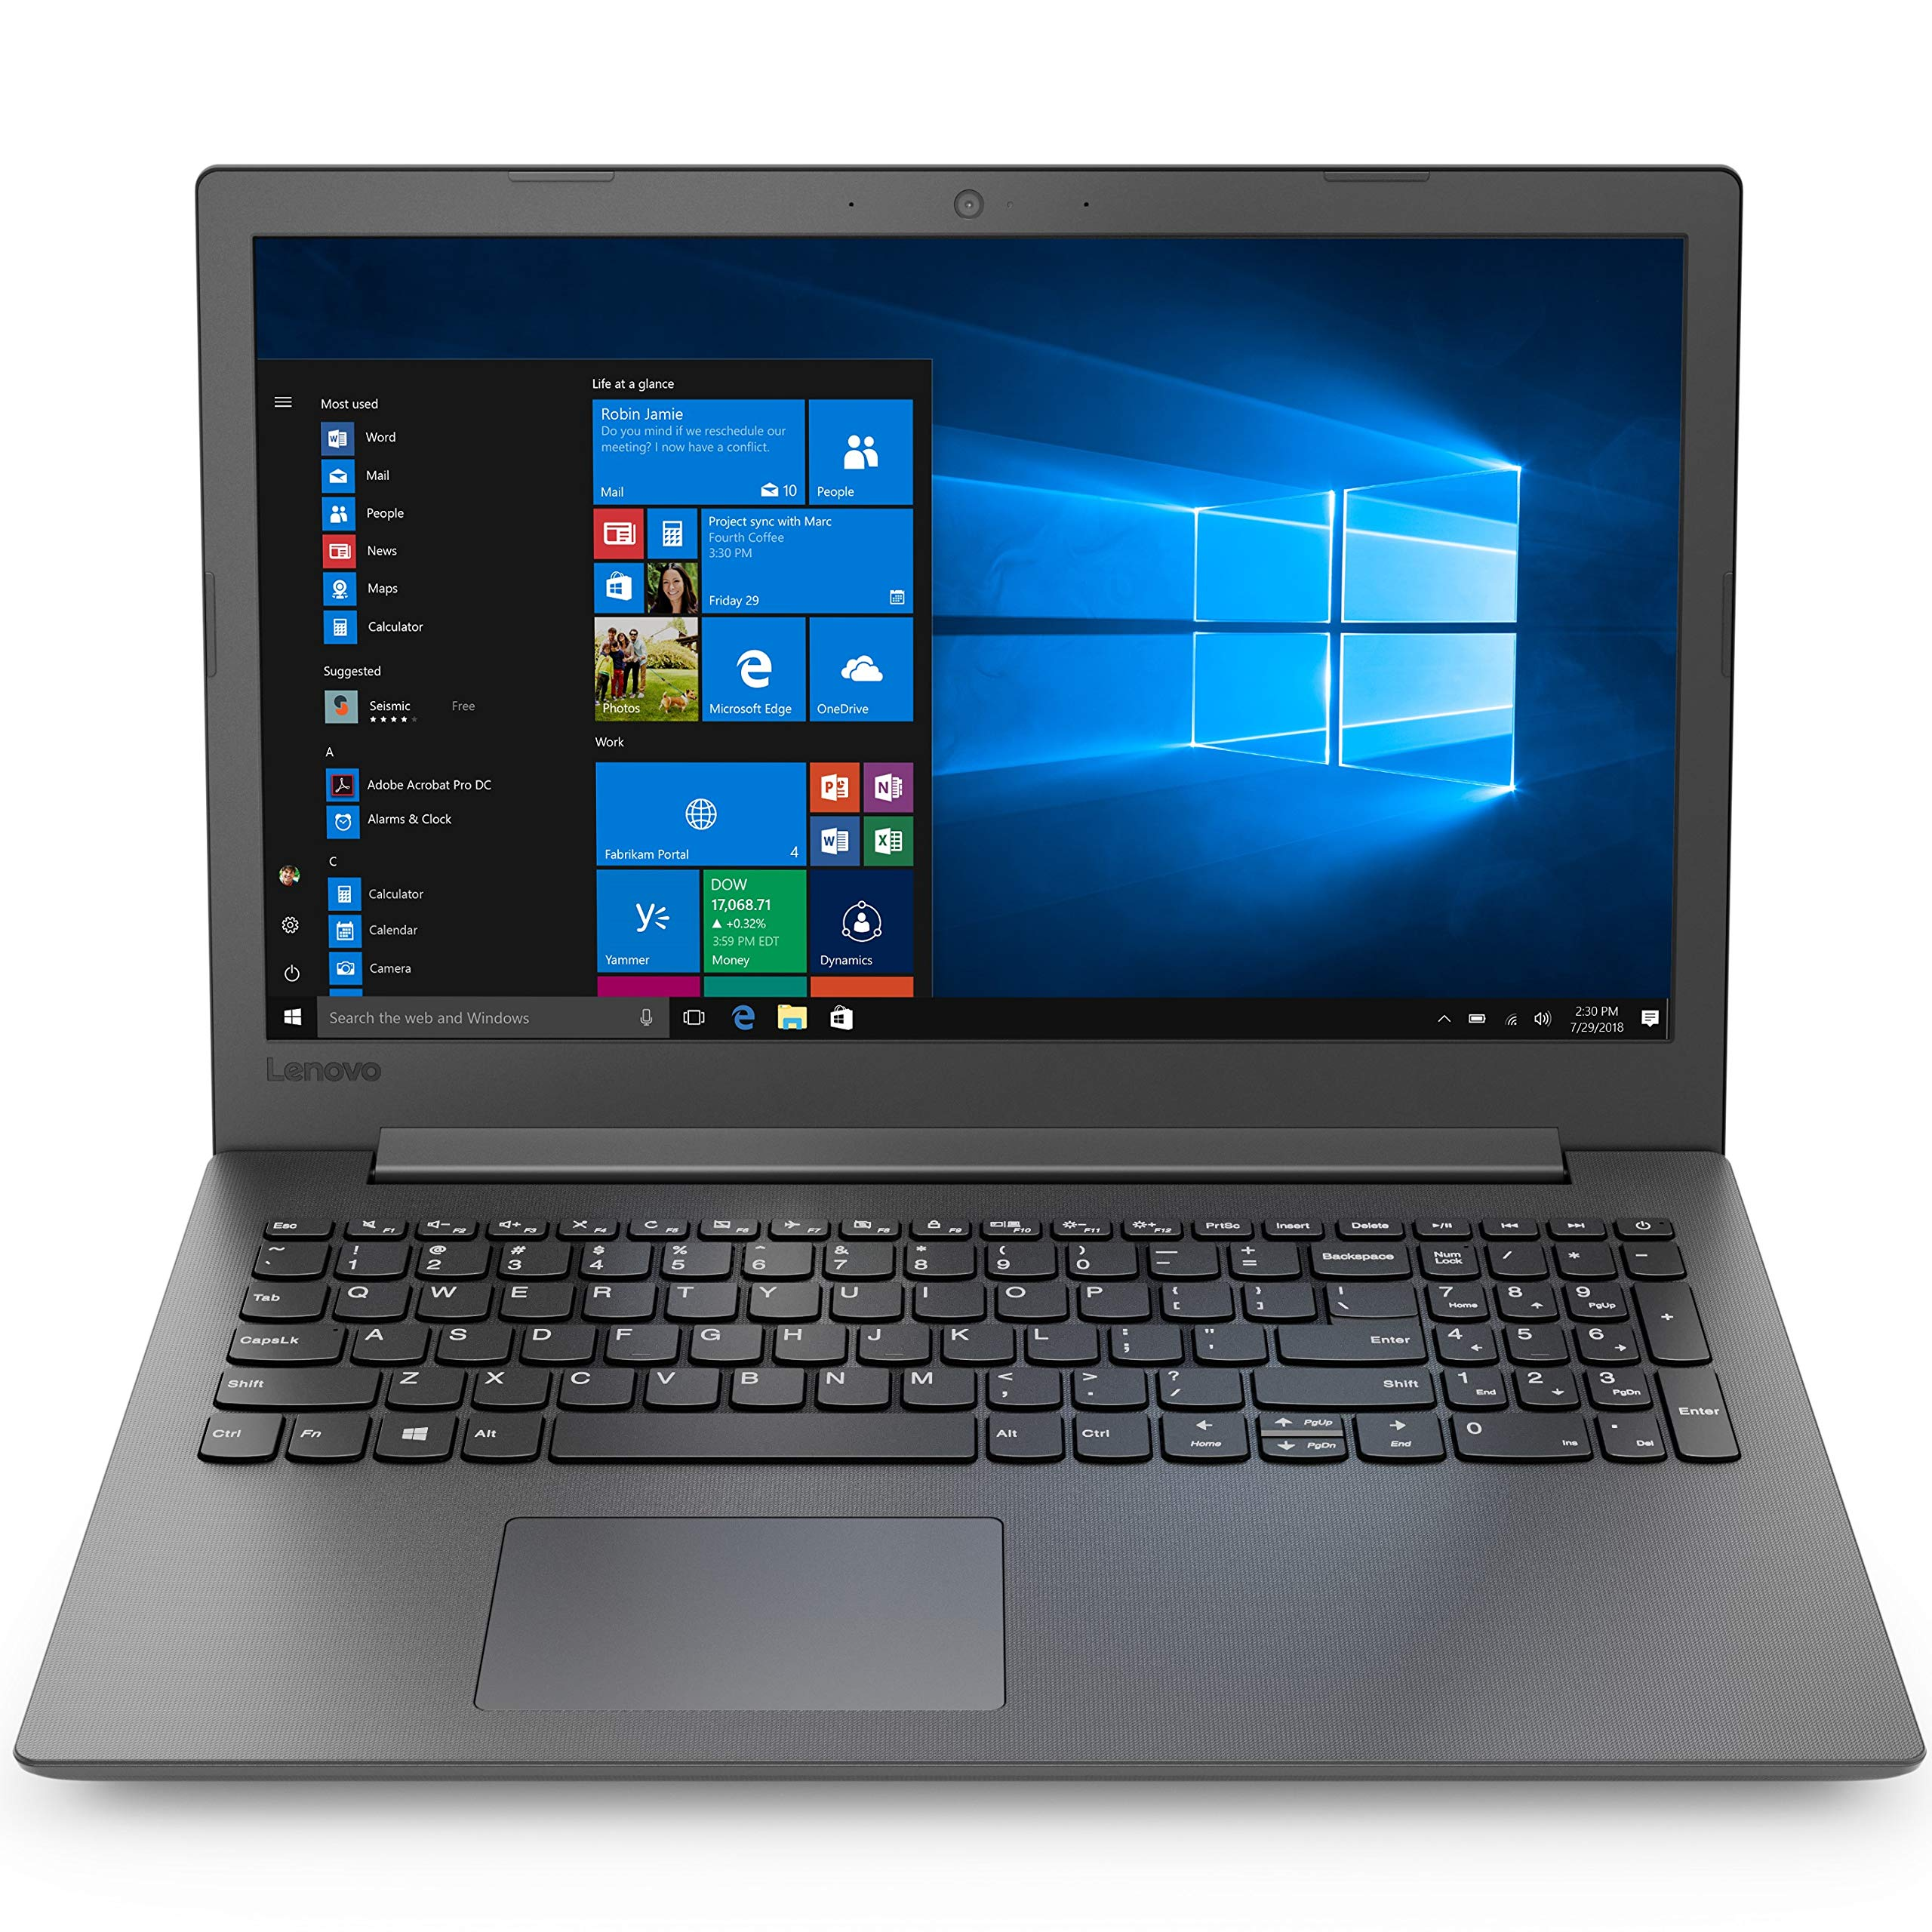 Lenovo Ideapad 130 Amd A4 9125 15 6 Inch Buy Online In Trinidad And Tobago At Desertcart